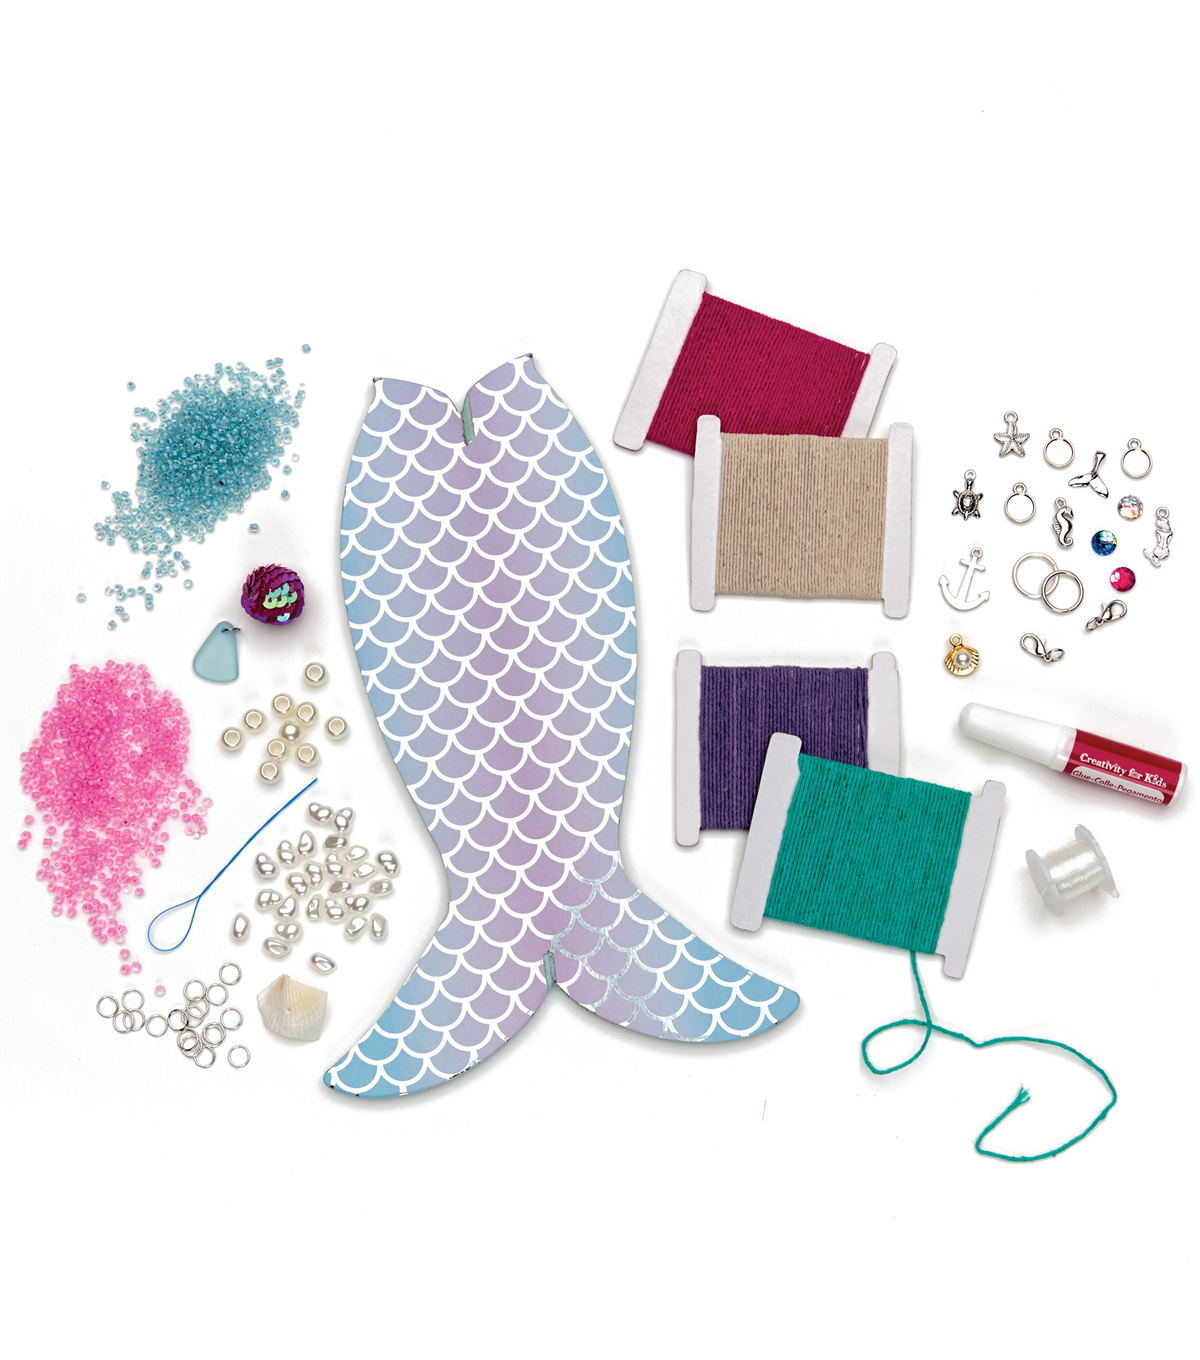 Creativity for Kids Mermaid Tail Jewelry Maker Kit